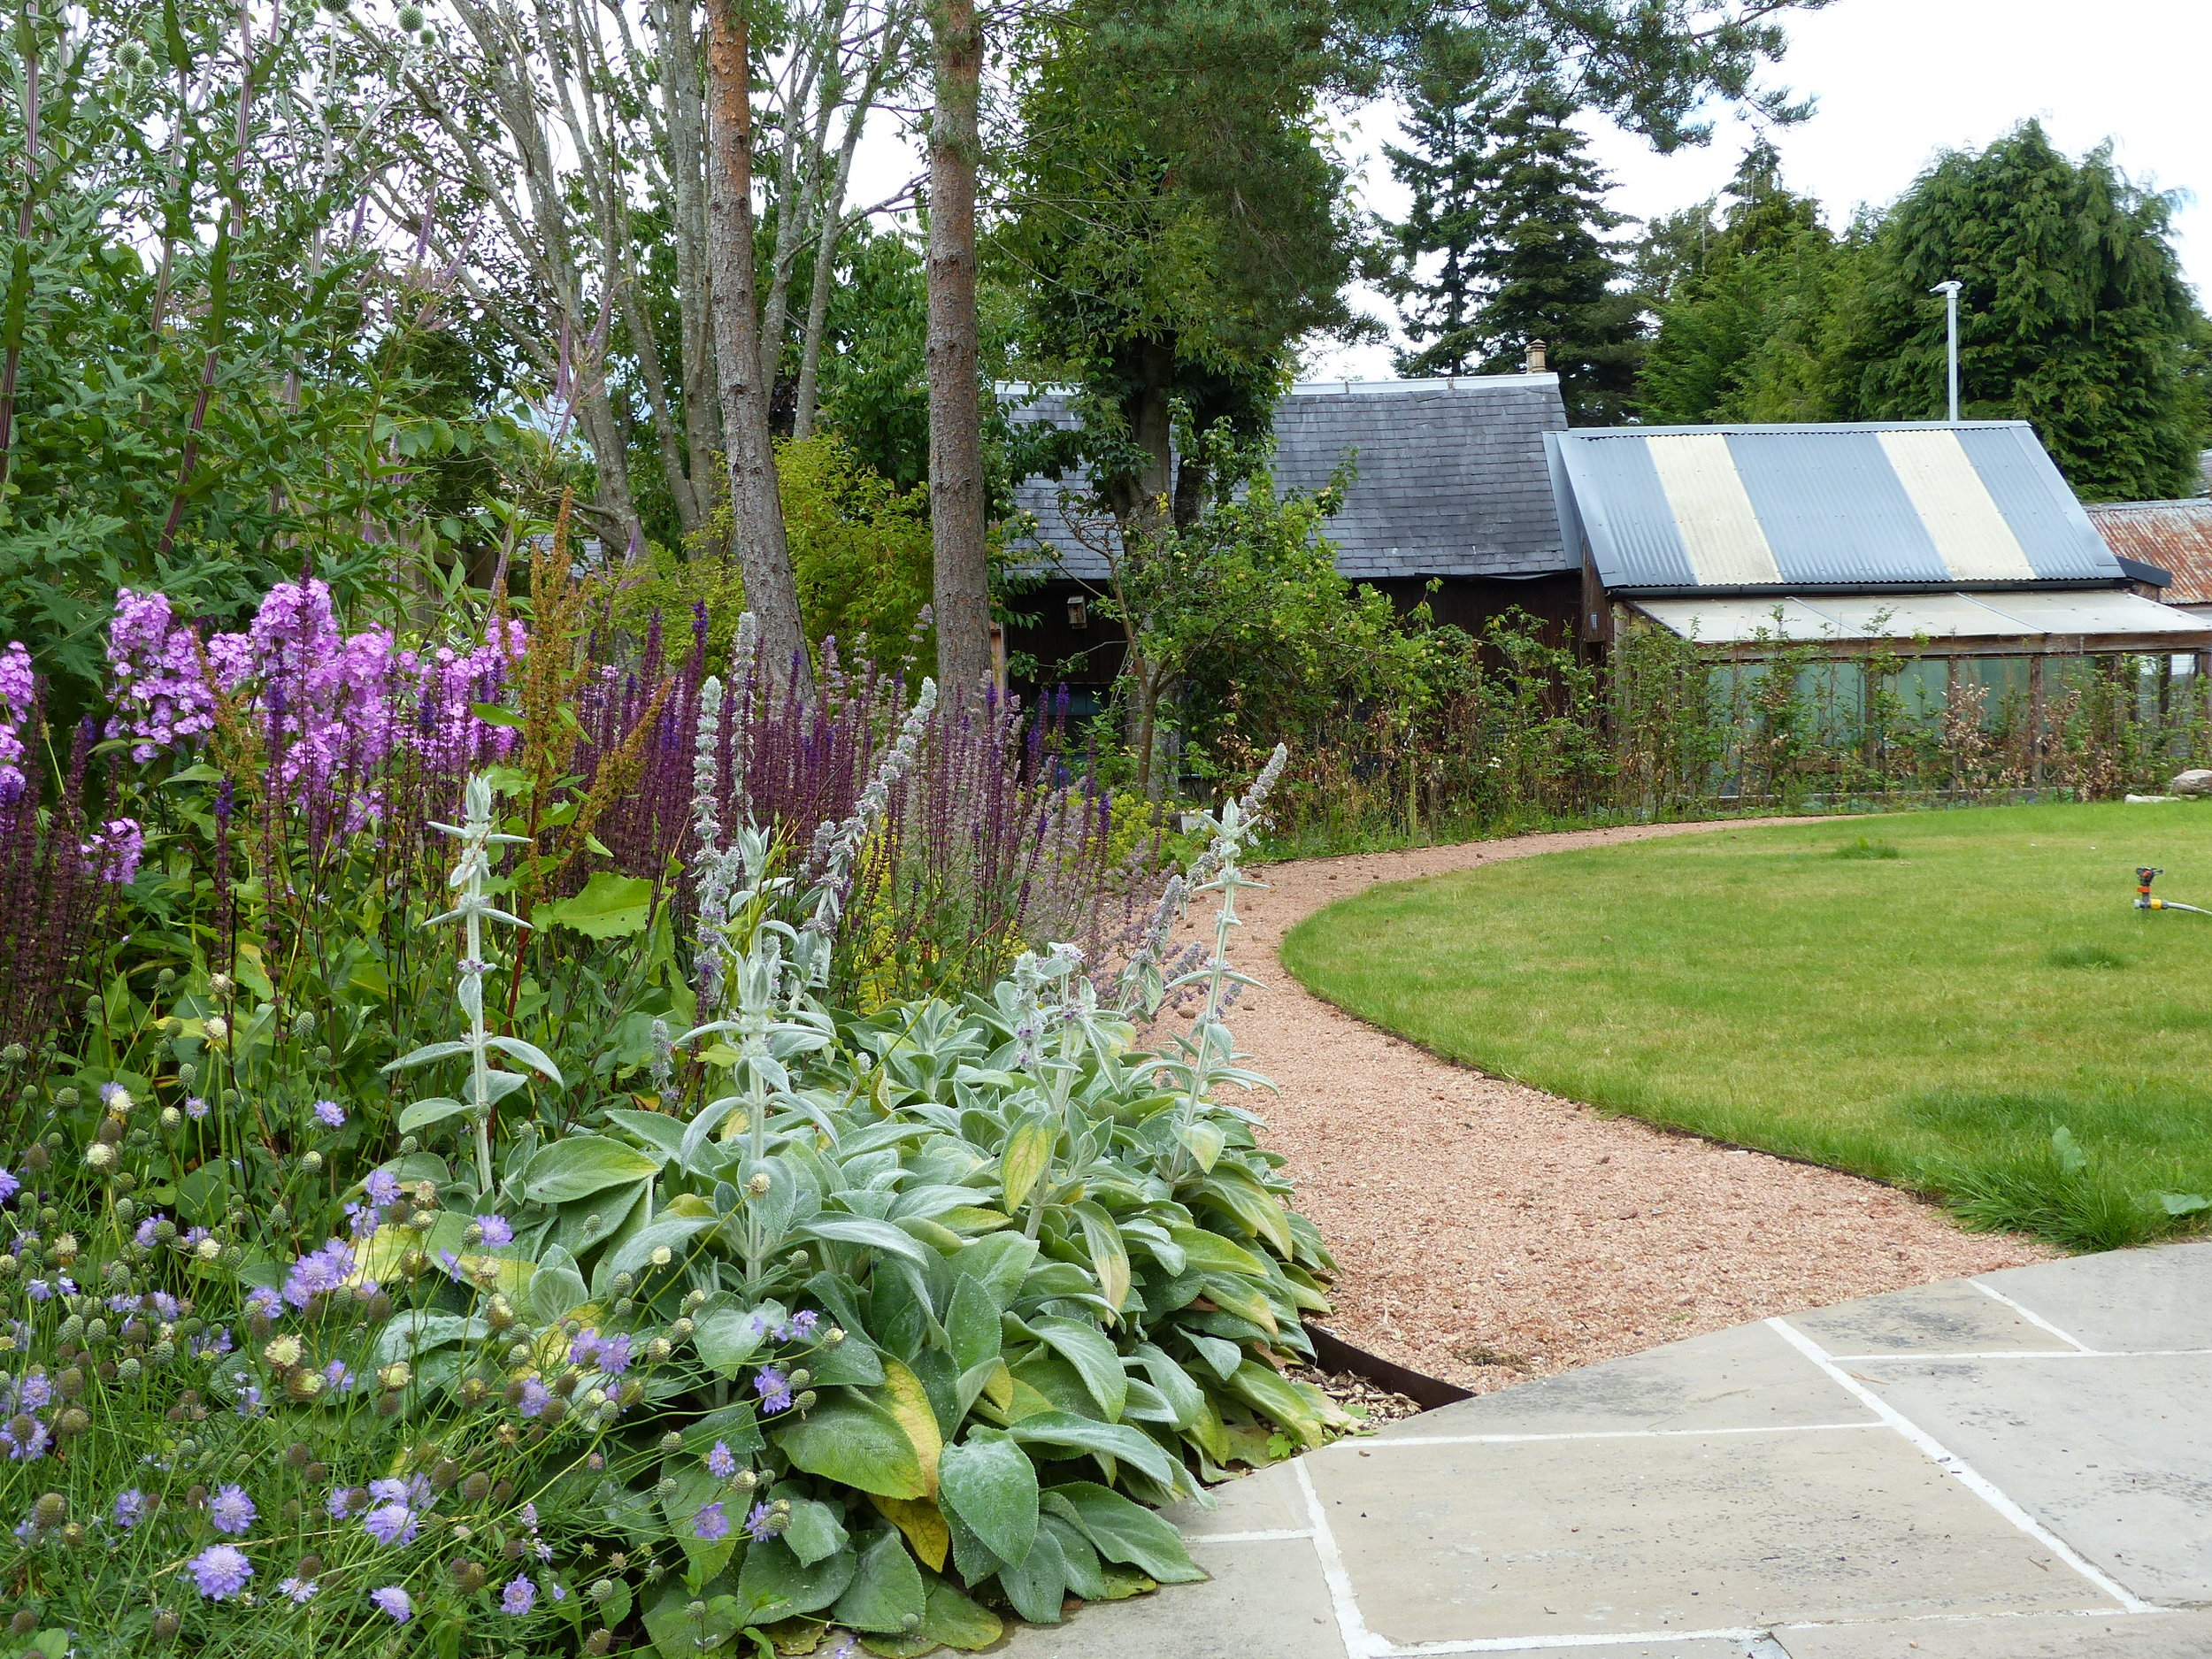 After - curved path leads eye through the garden